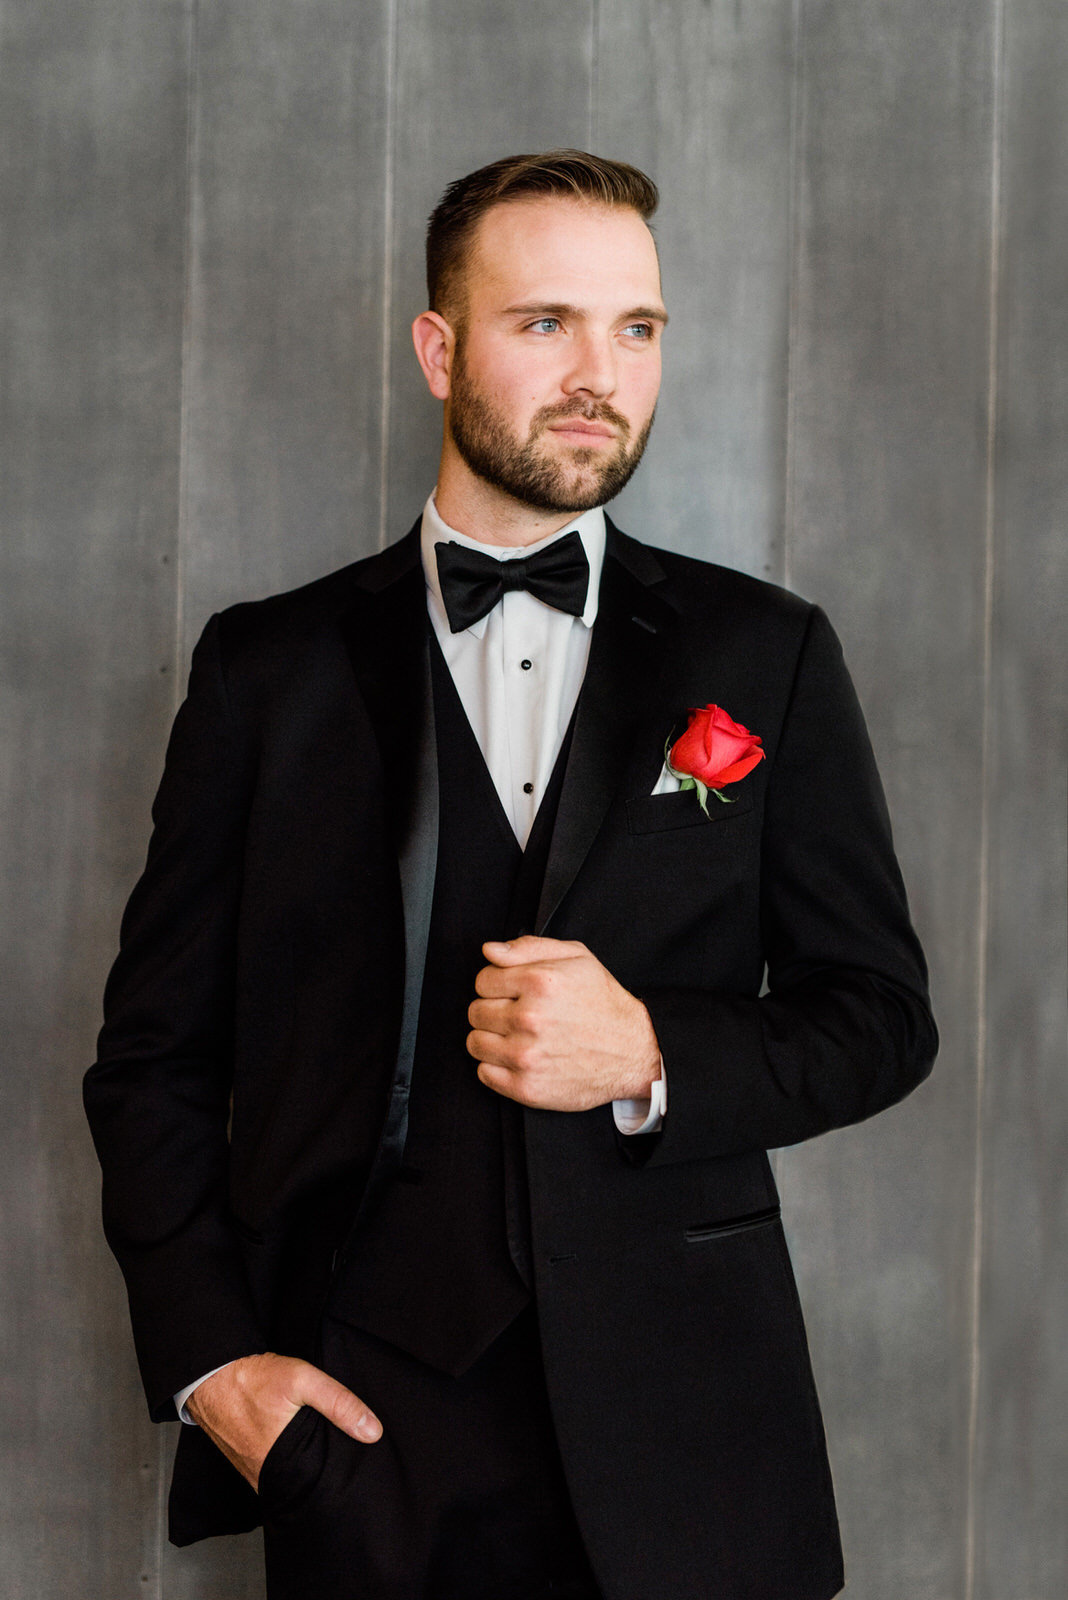 Gorgeous groom in black tuxedo